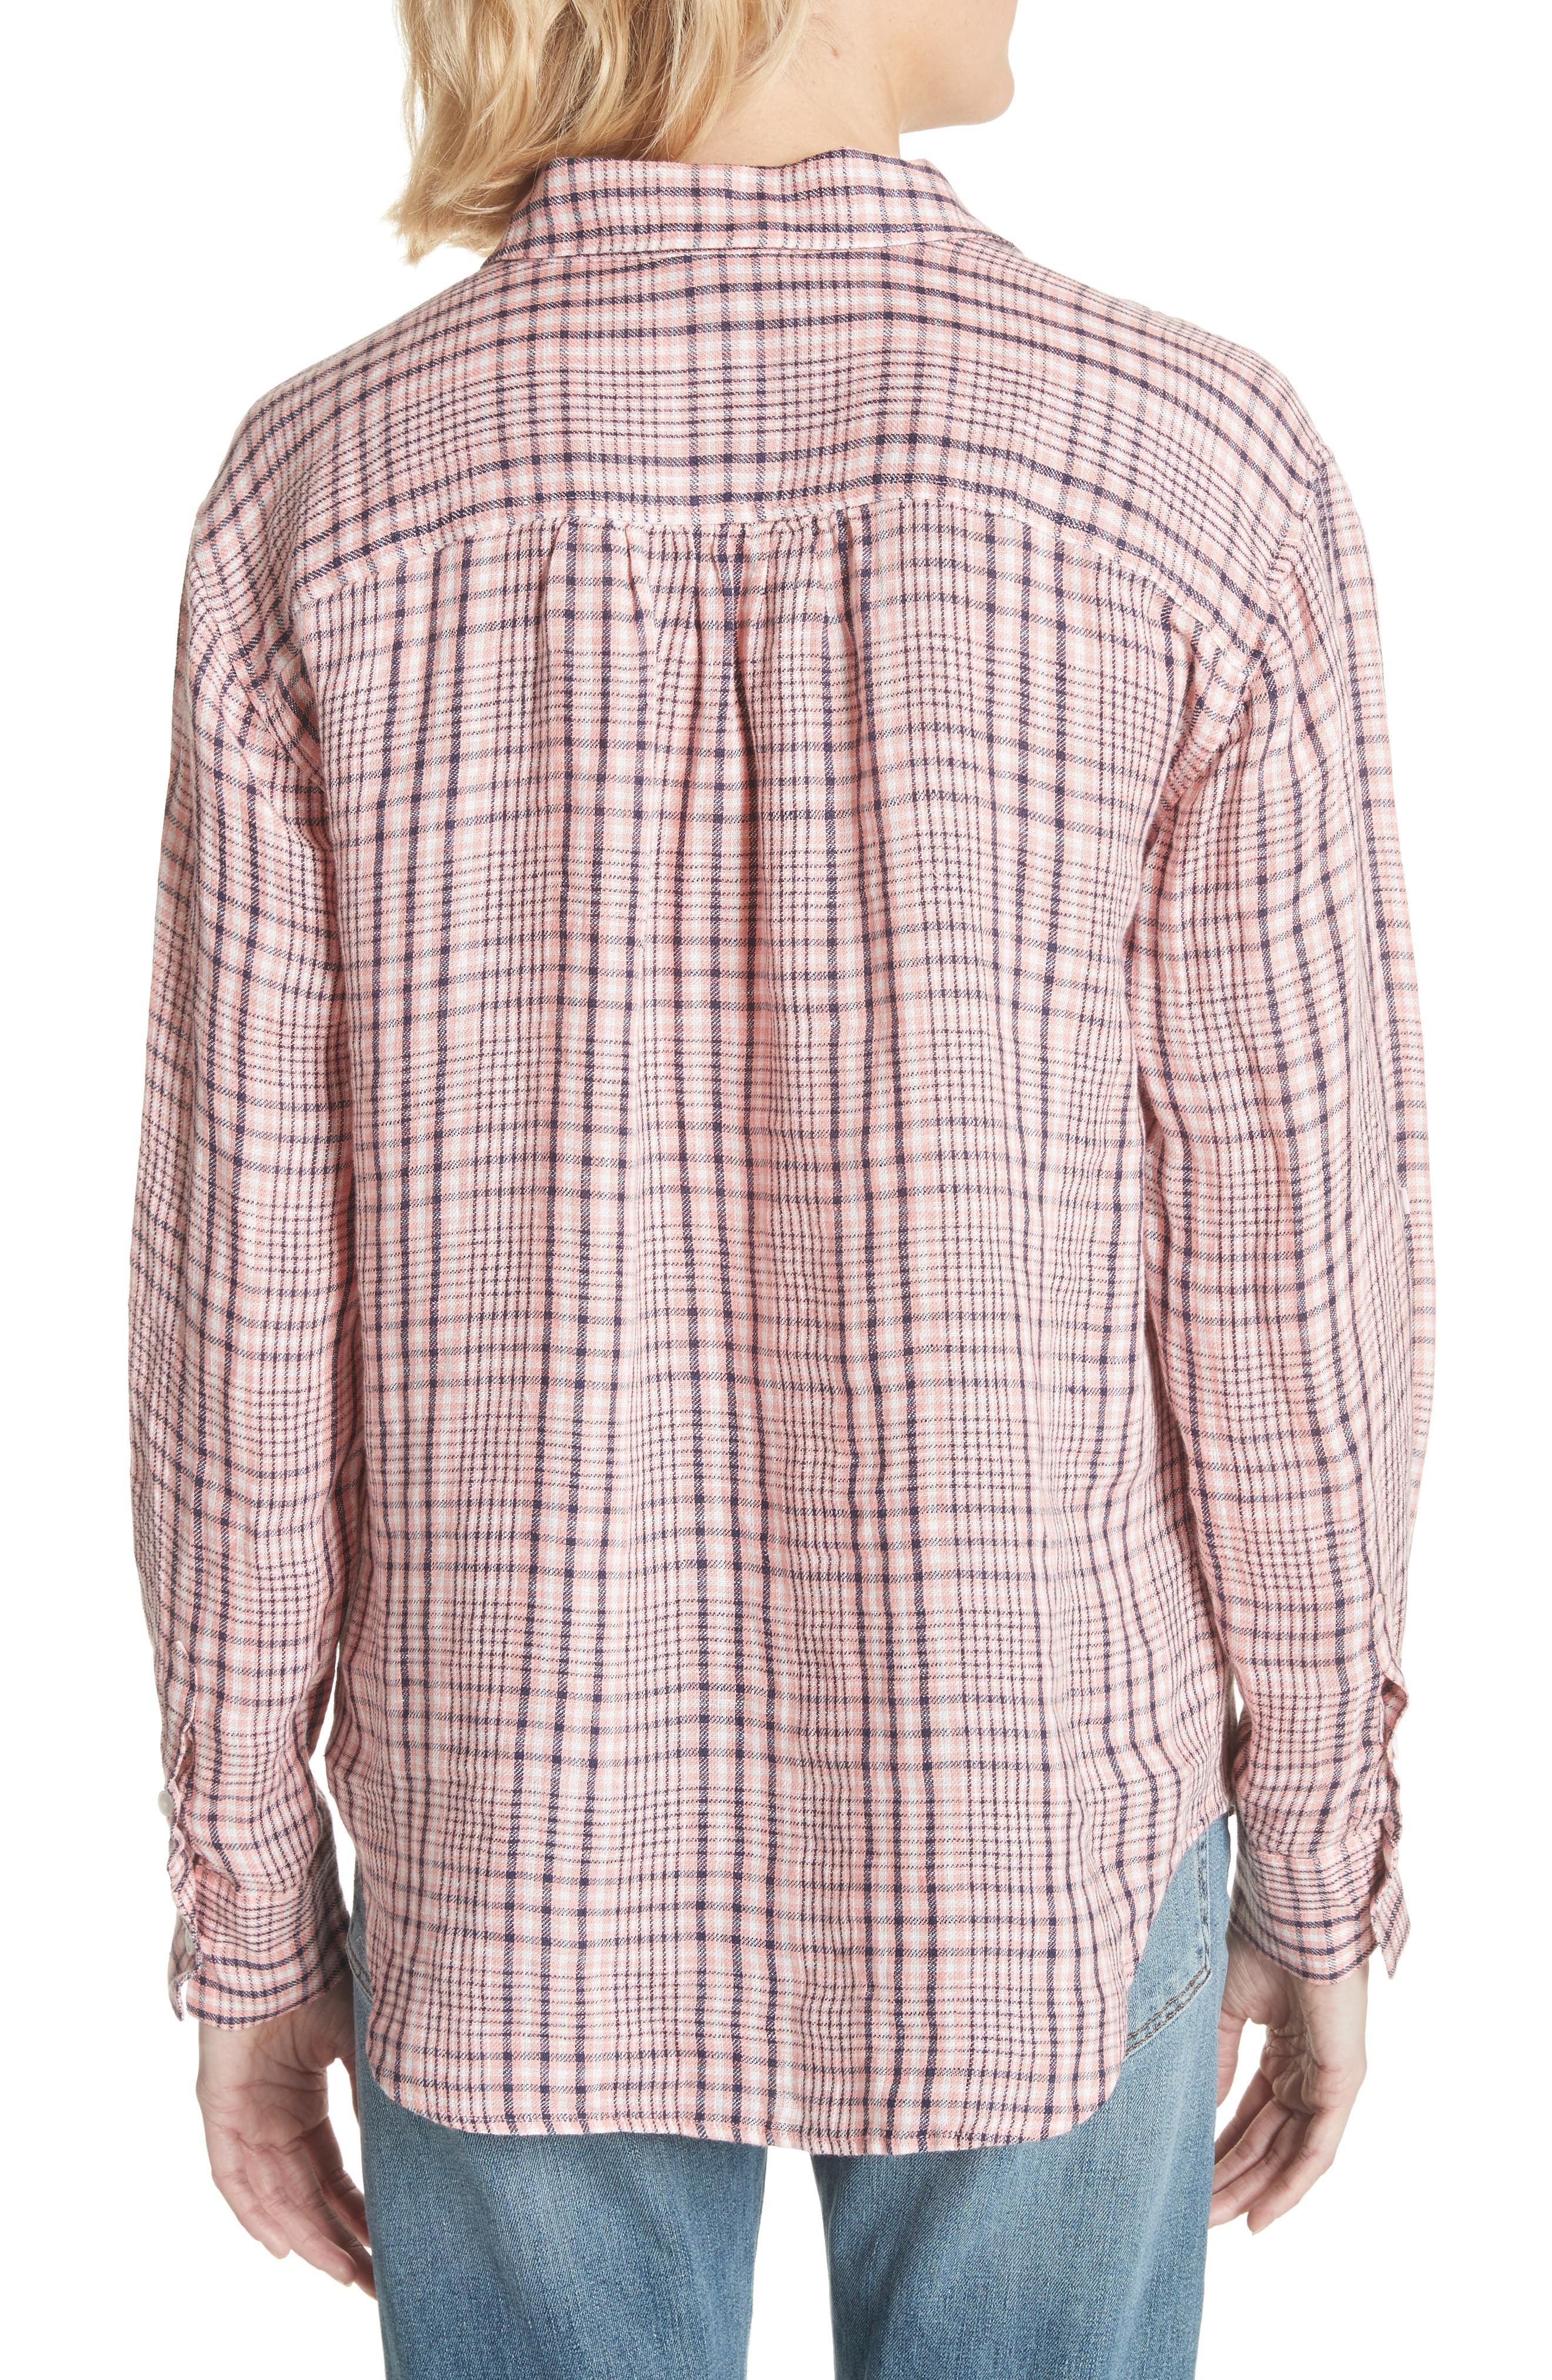 Lidelle Plaid Linen Shirt,                             Alternate thumbnail 2, color,                             658